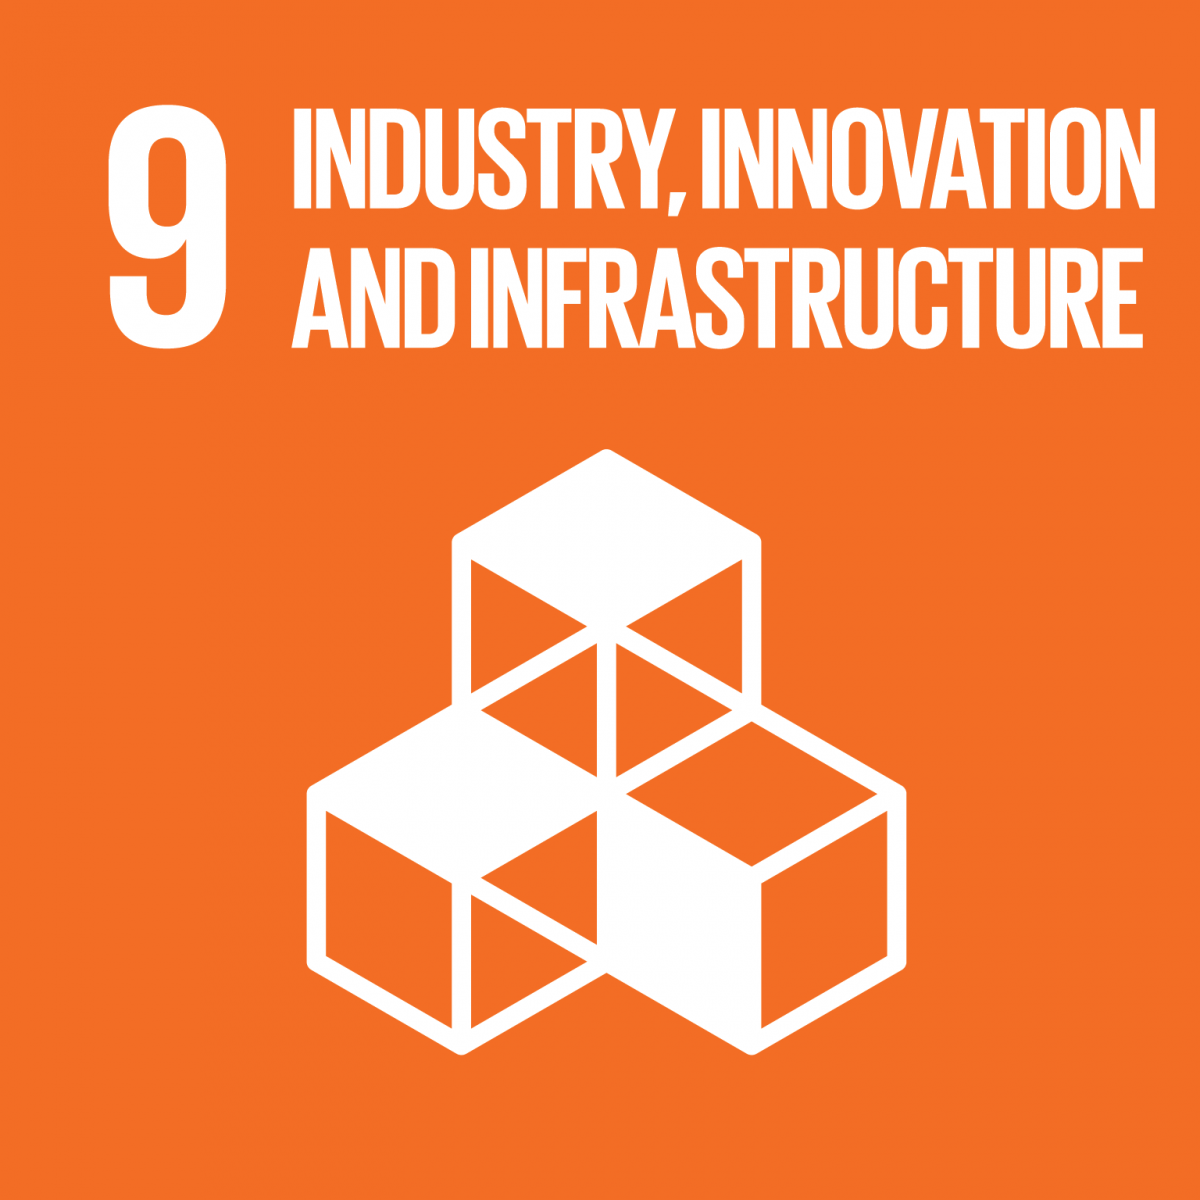 9. SDG: Industrie, Innovation und Infrastruktur